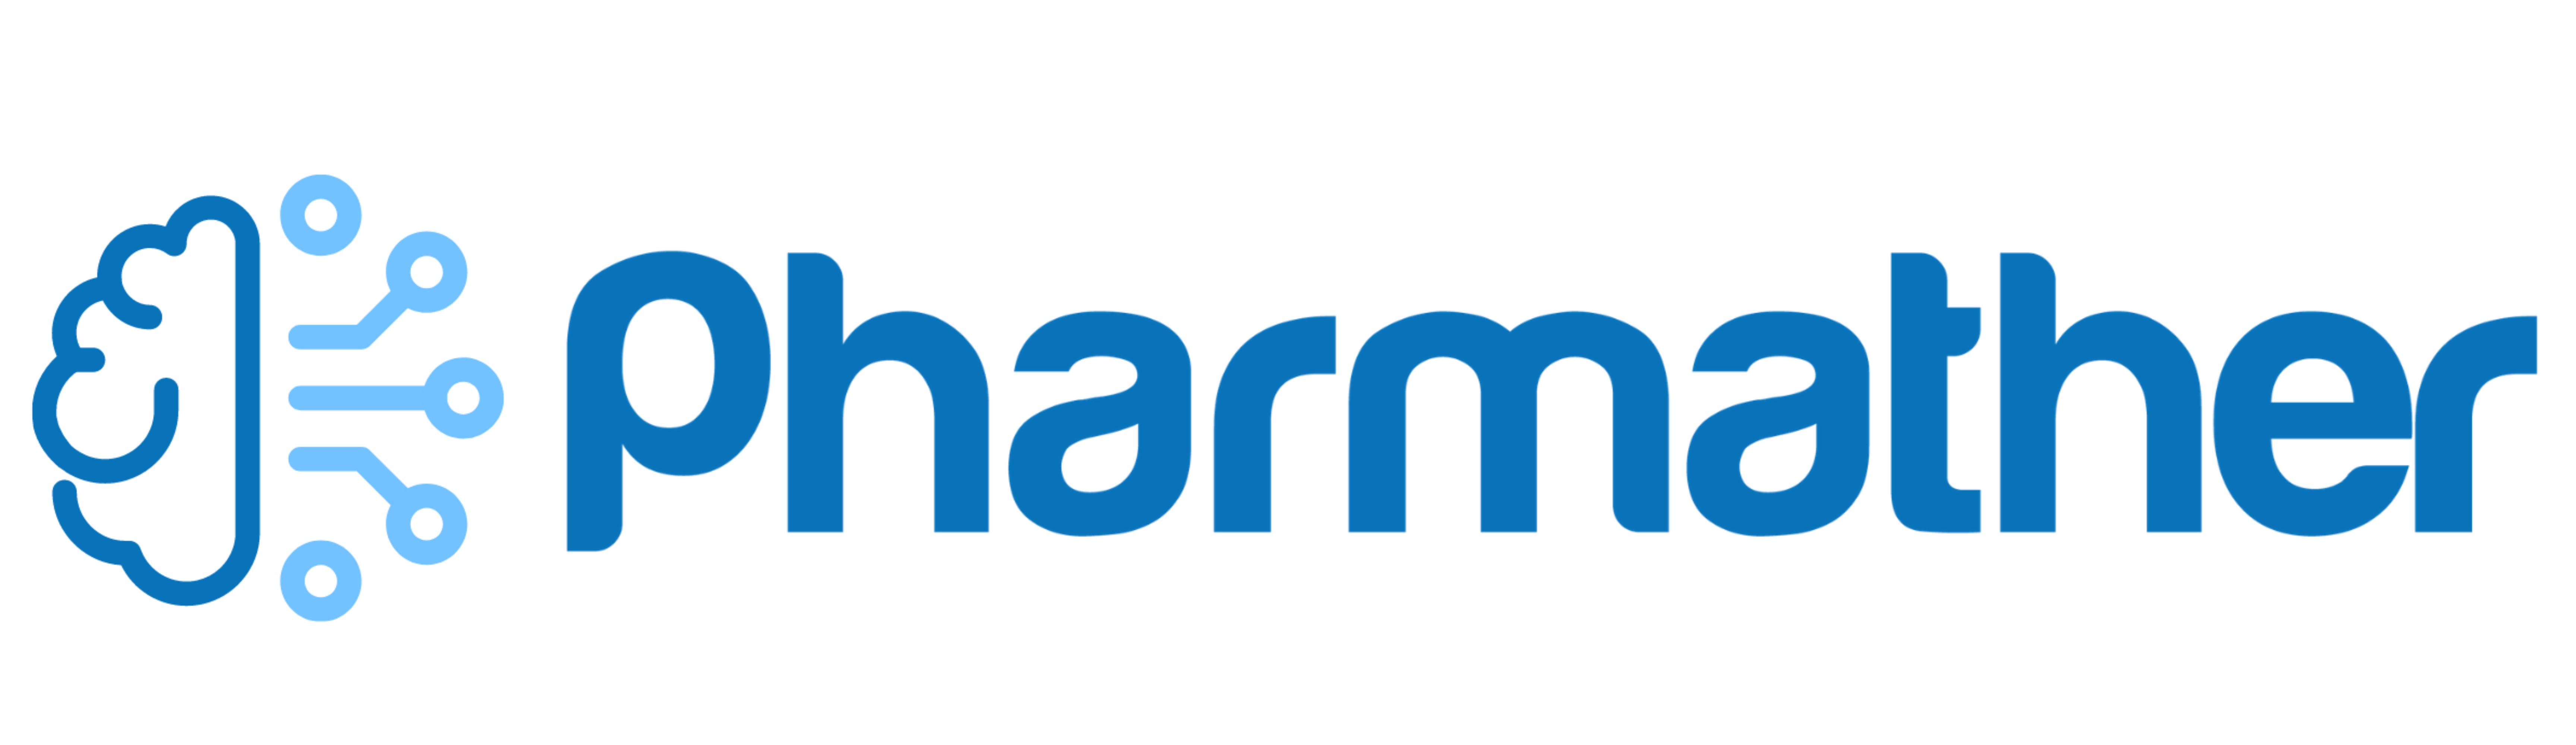 Pharmather Announces Exclusive License Agreement with the University of Arizona for the Commercialization of Ketamine in the Treatment of Parkinson's Disease